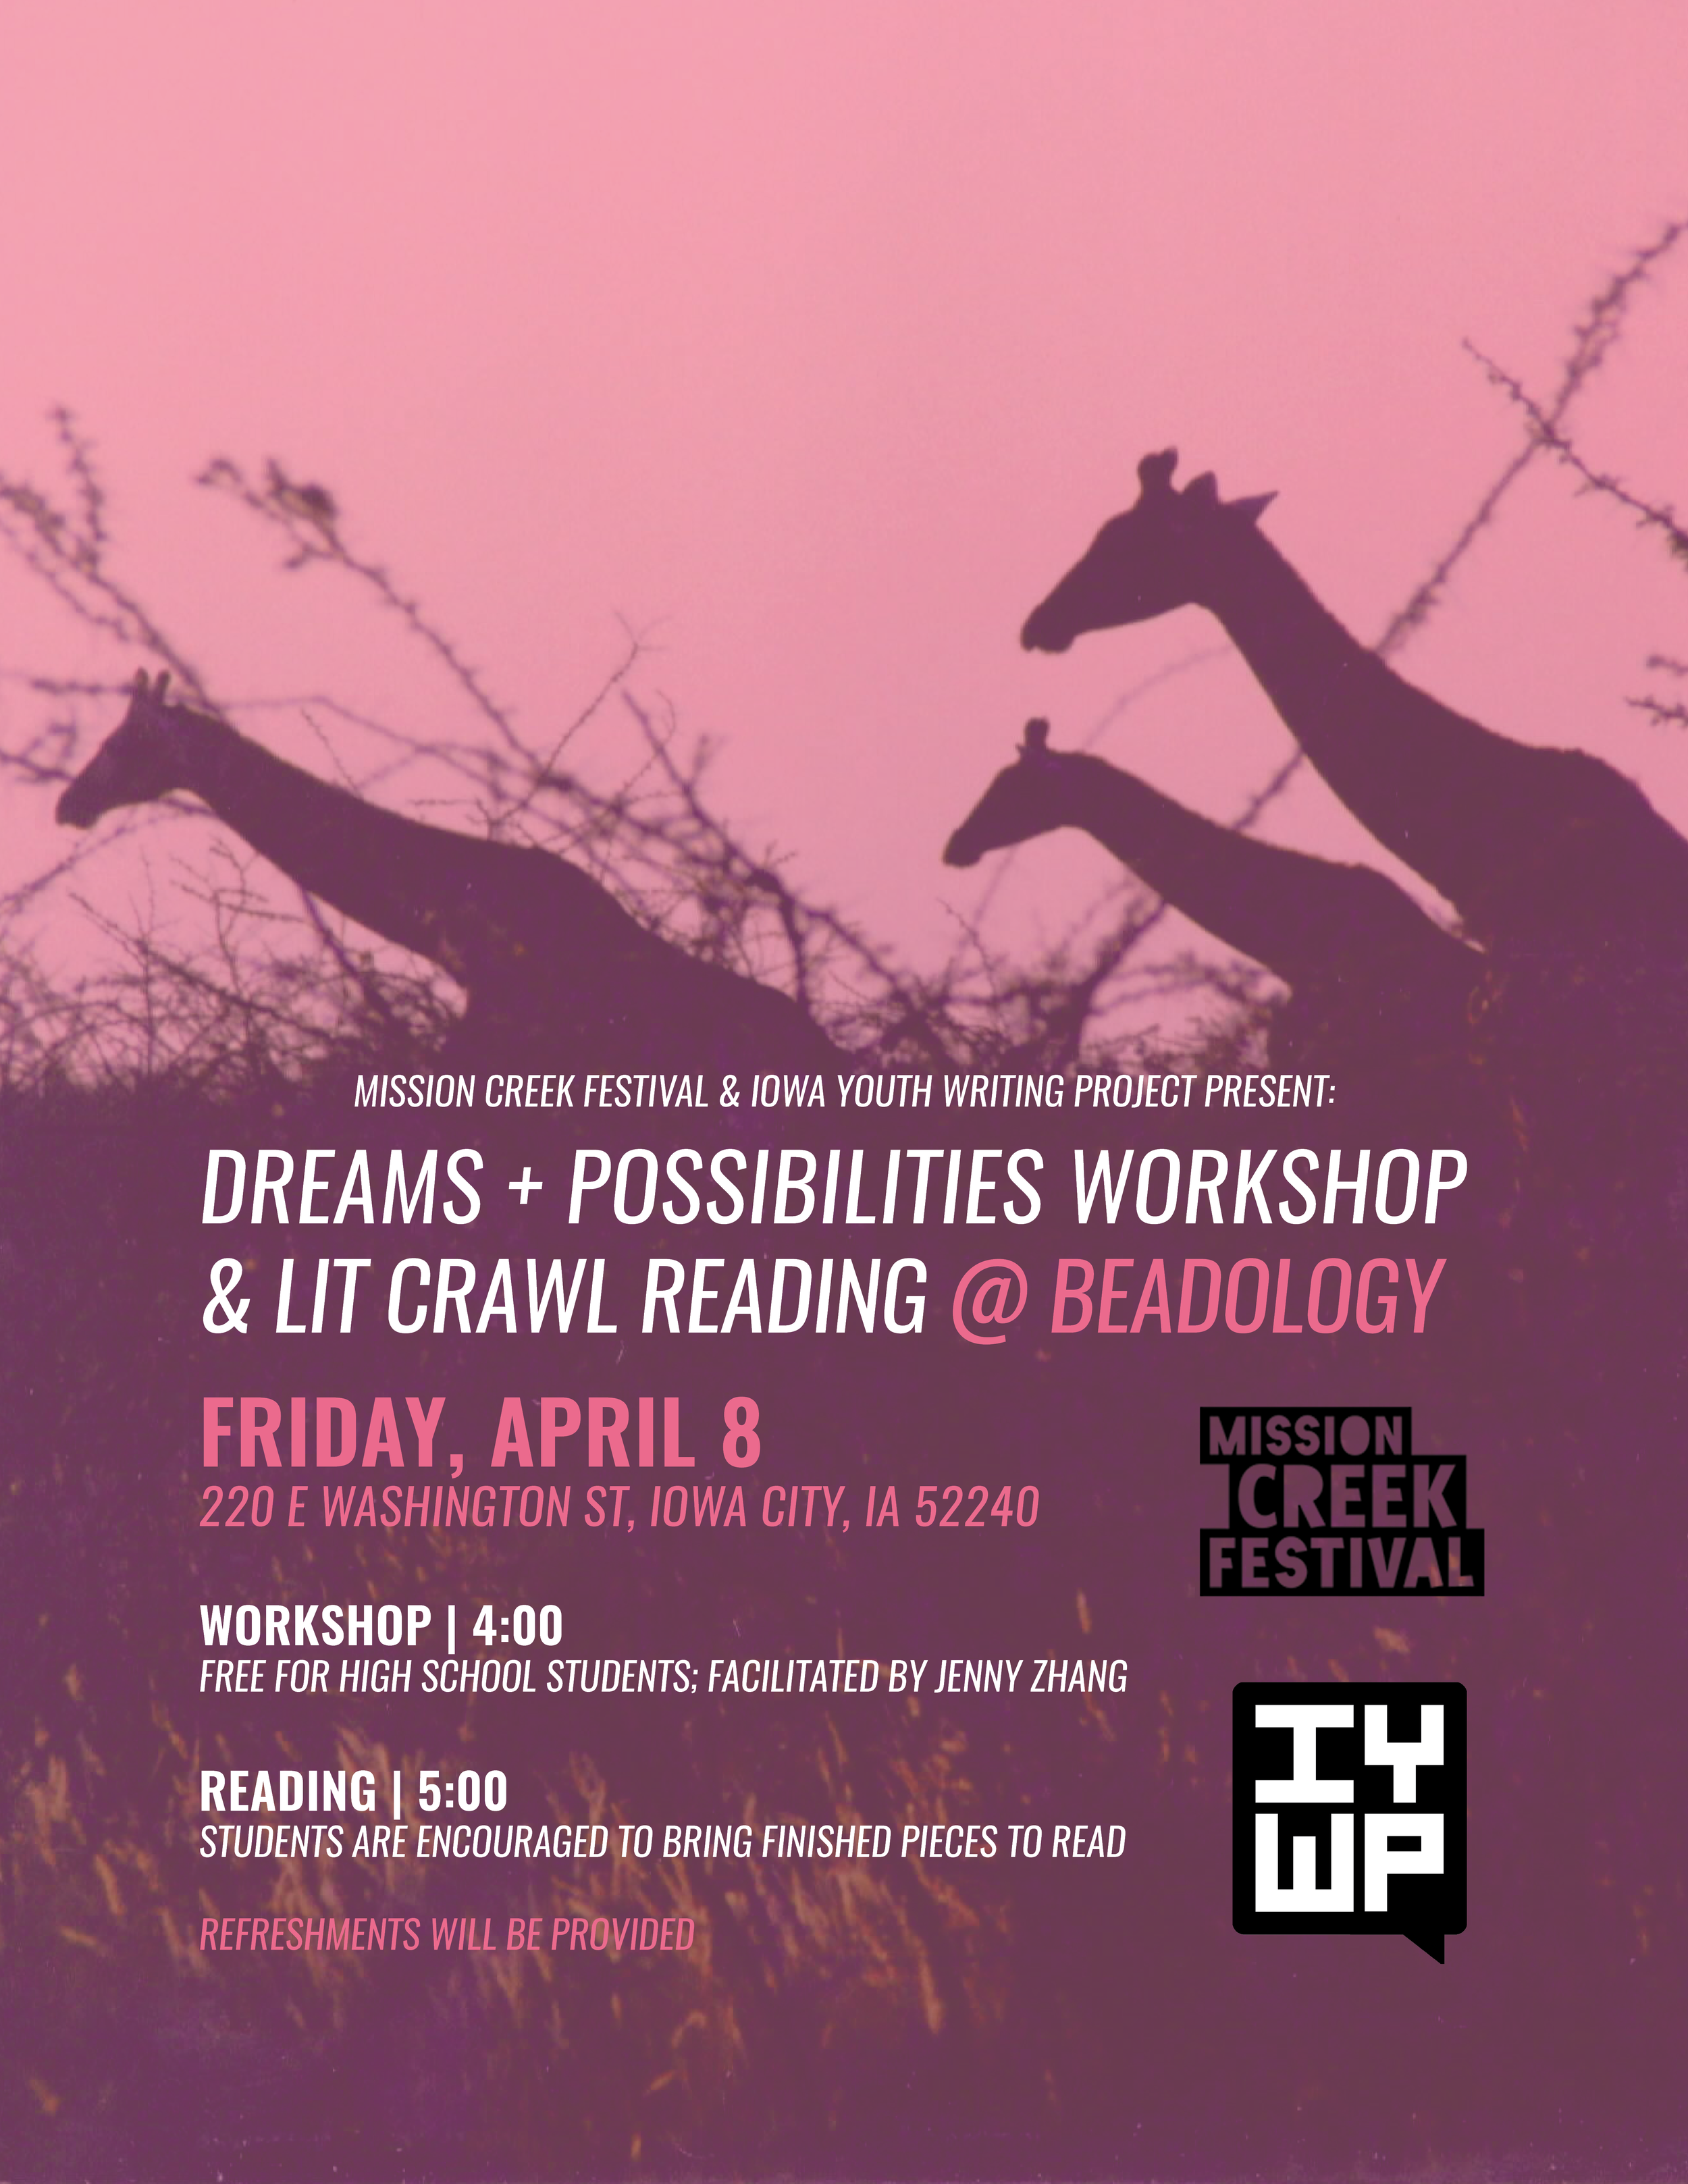 mission creek lit crawl reading poster.png